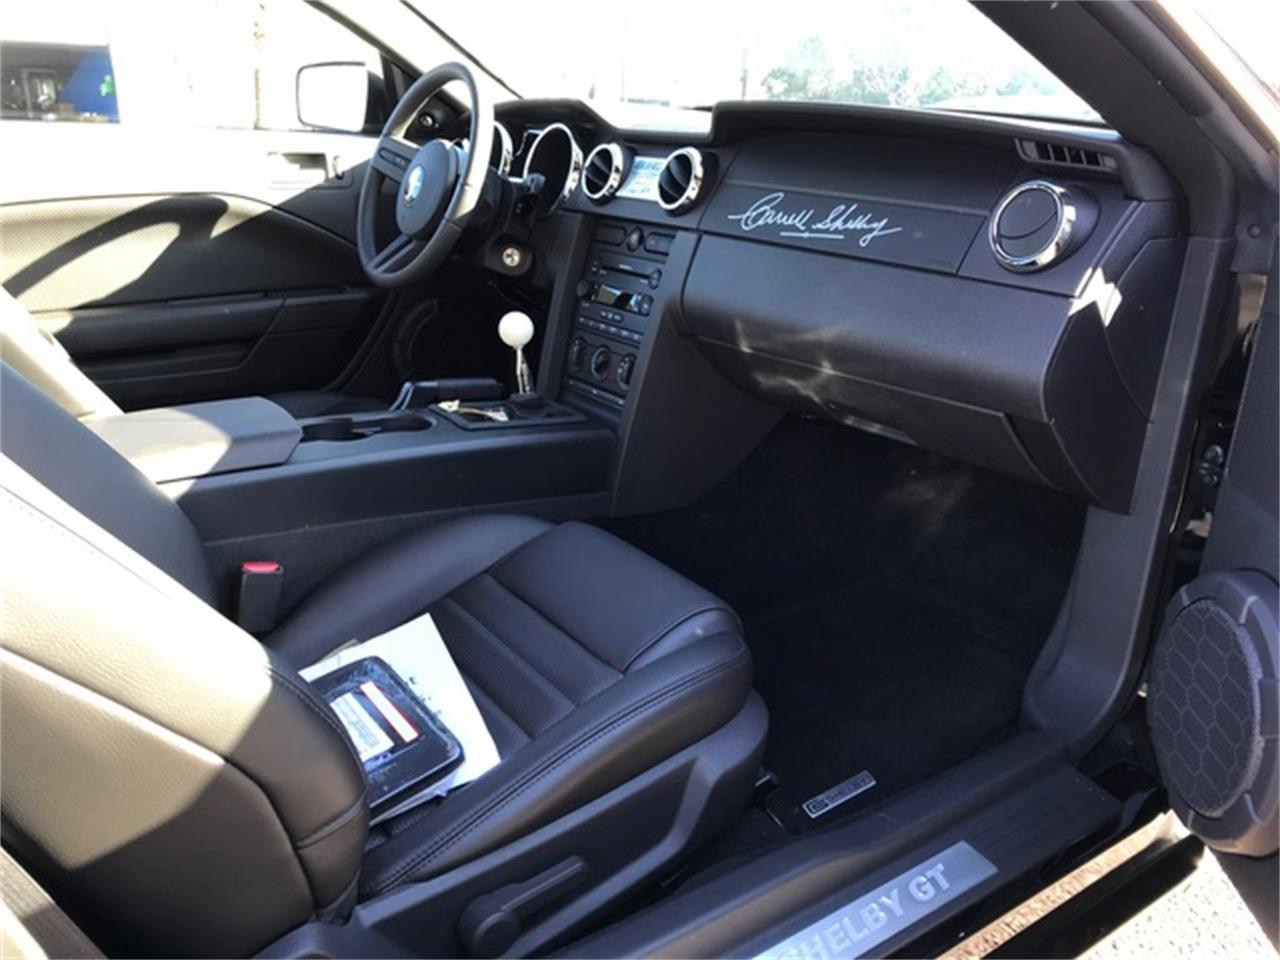 2007 Shelby GT for sale in Sugar Hill, GA – photo 6